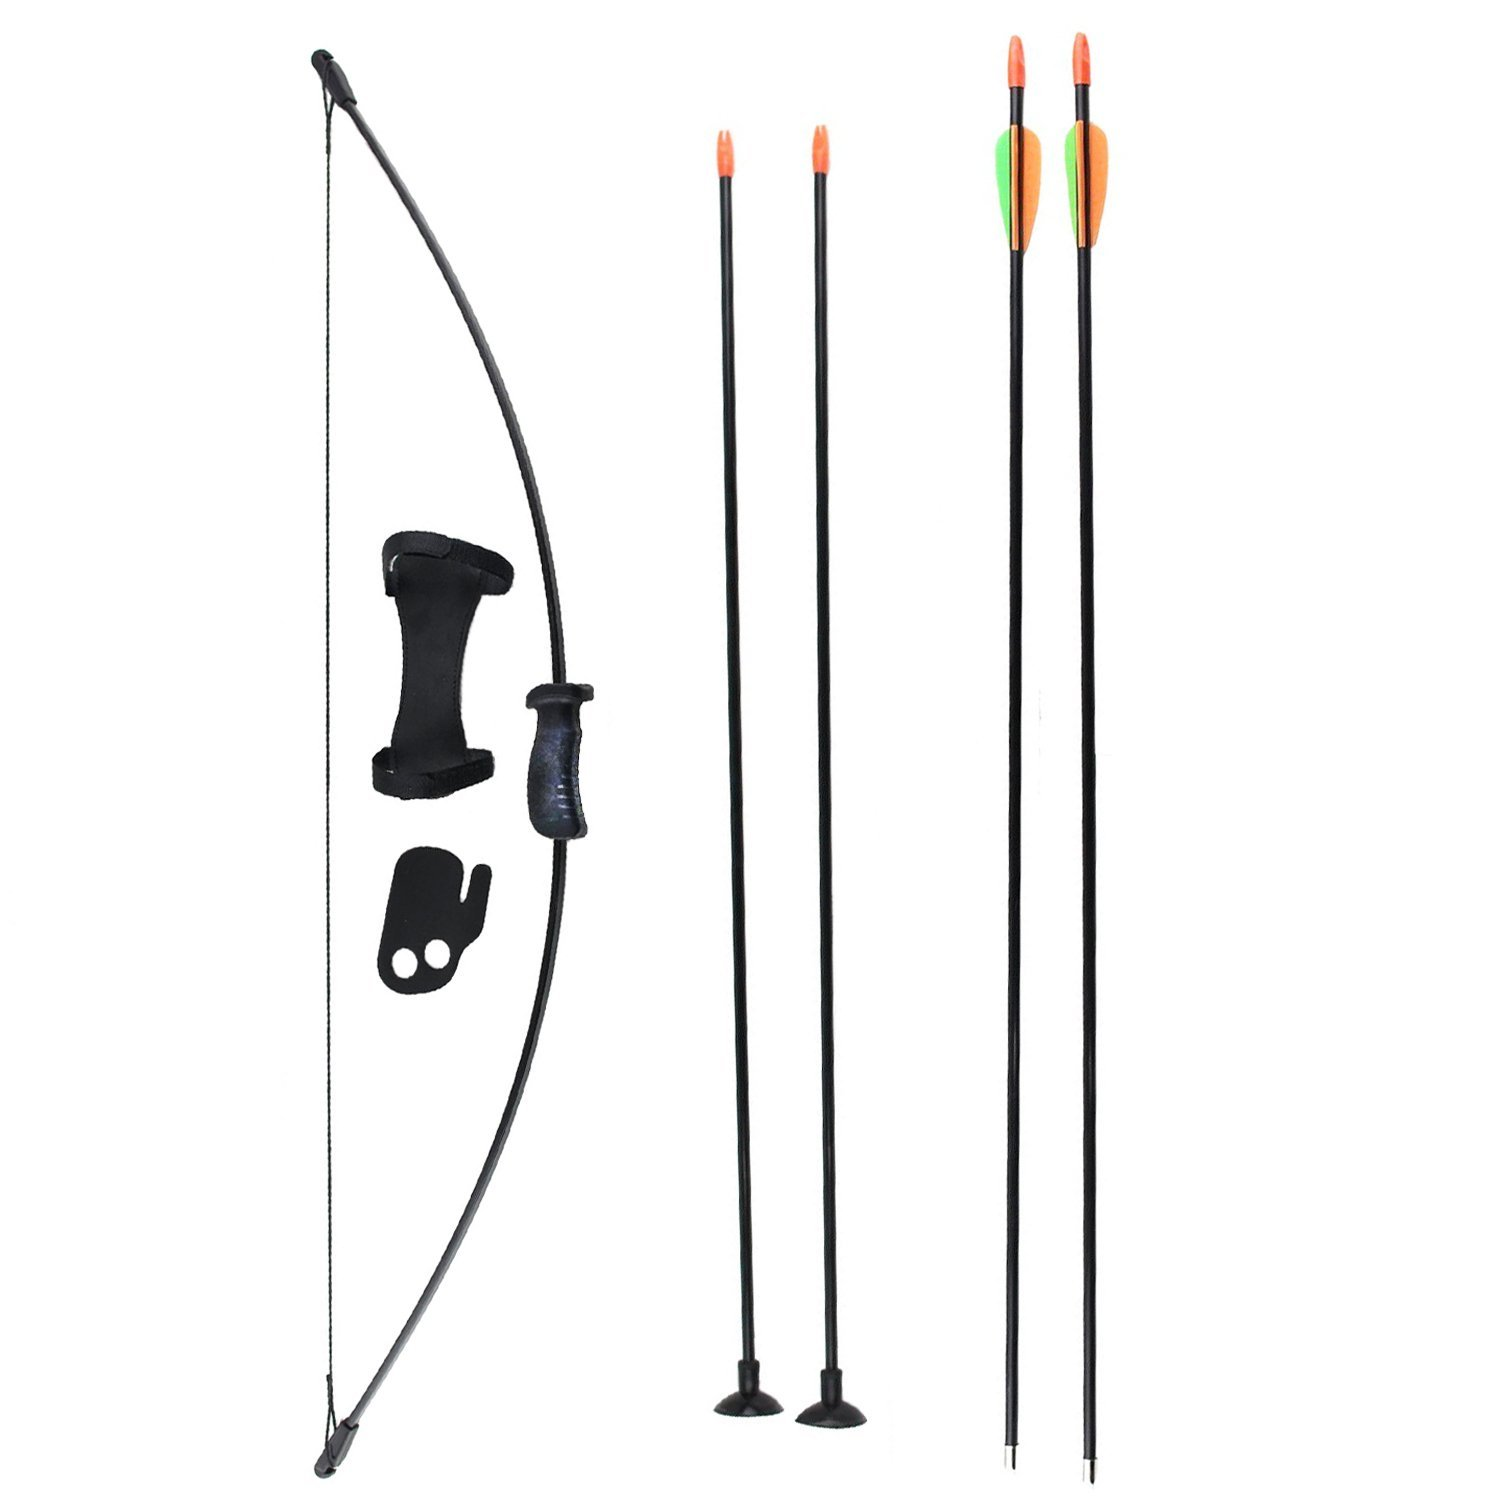 SinoArt Long Bow and Arrow Set for Children Kids Youth Outdoor Sports Game Target Toy Gift Bow Set with 4 Arrows 16 LBs (Black) by SinoArt